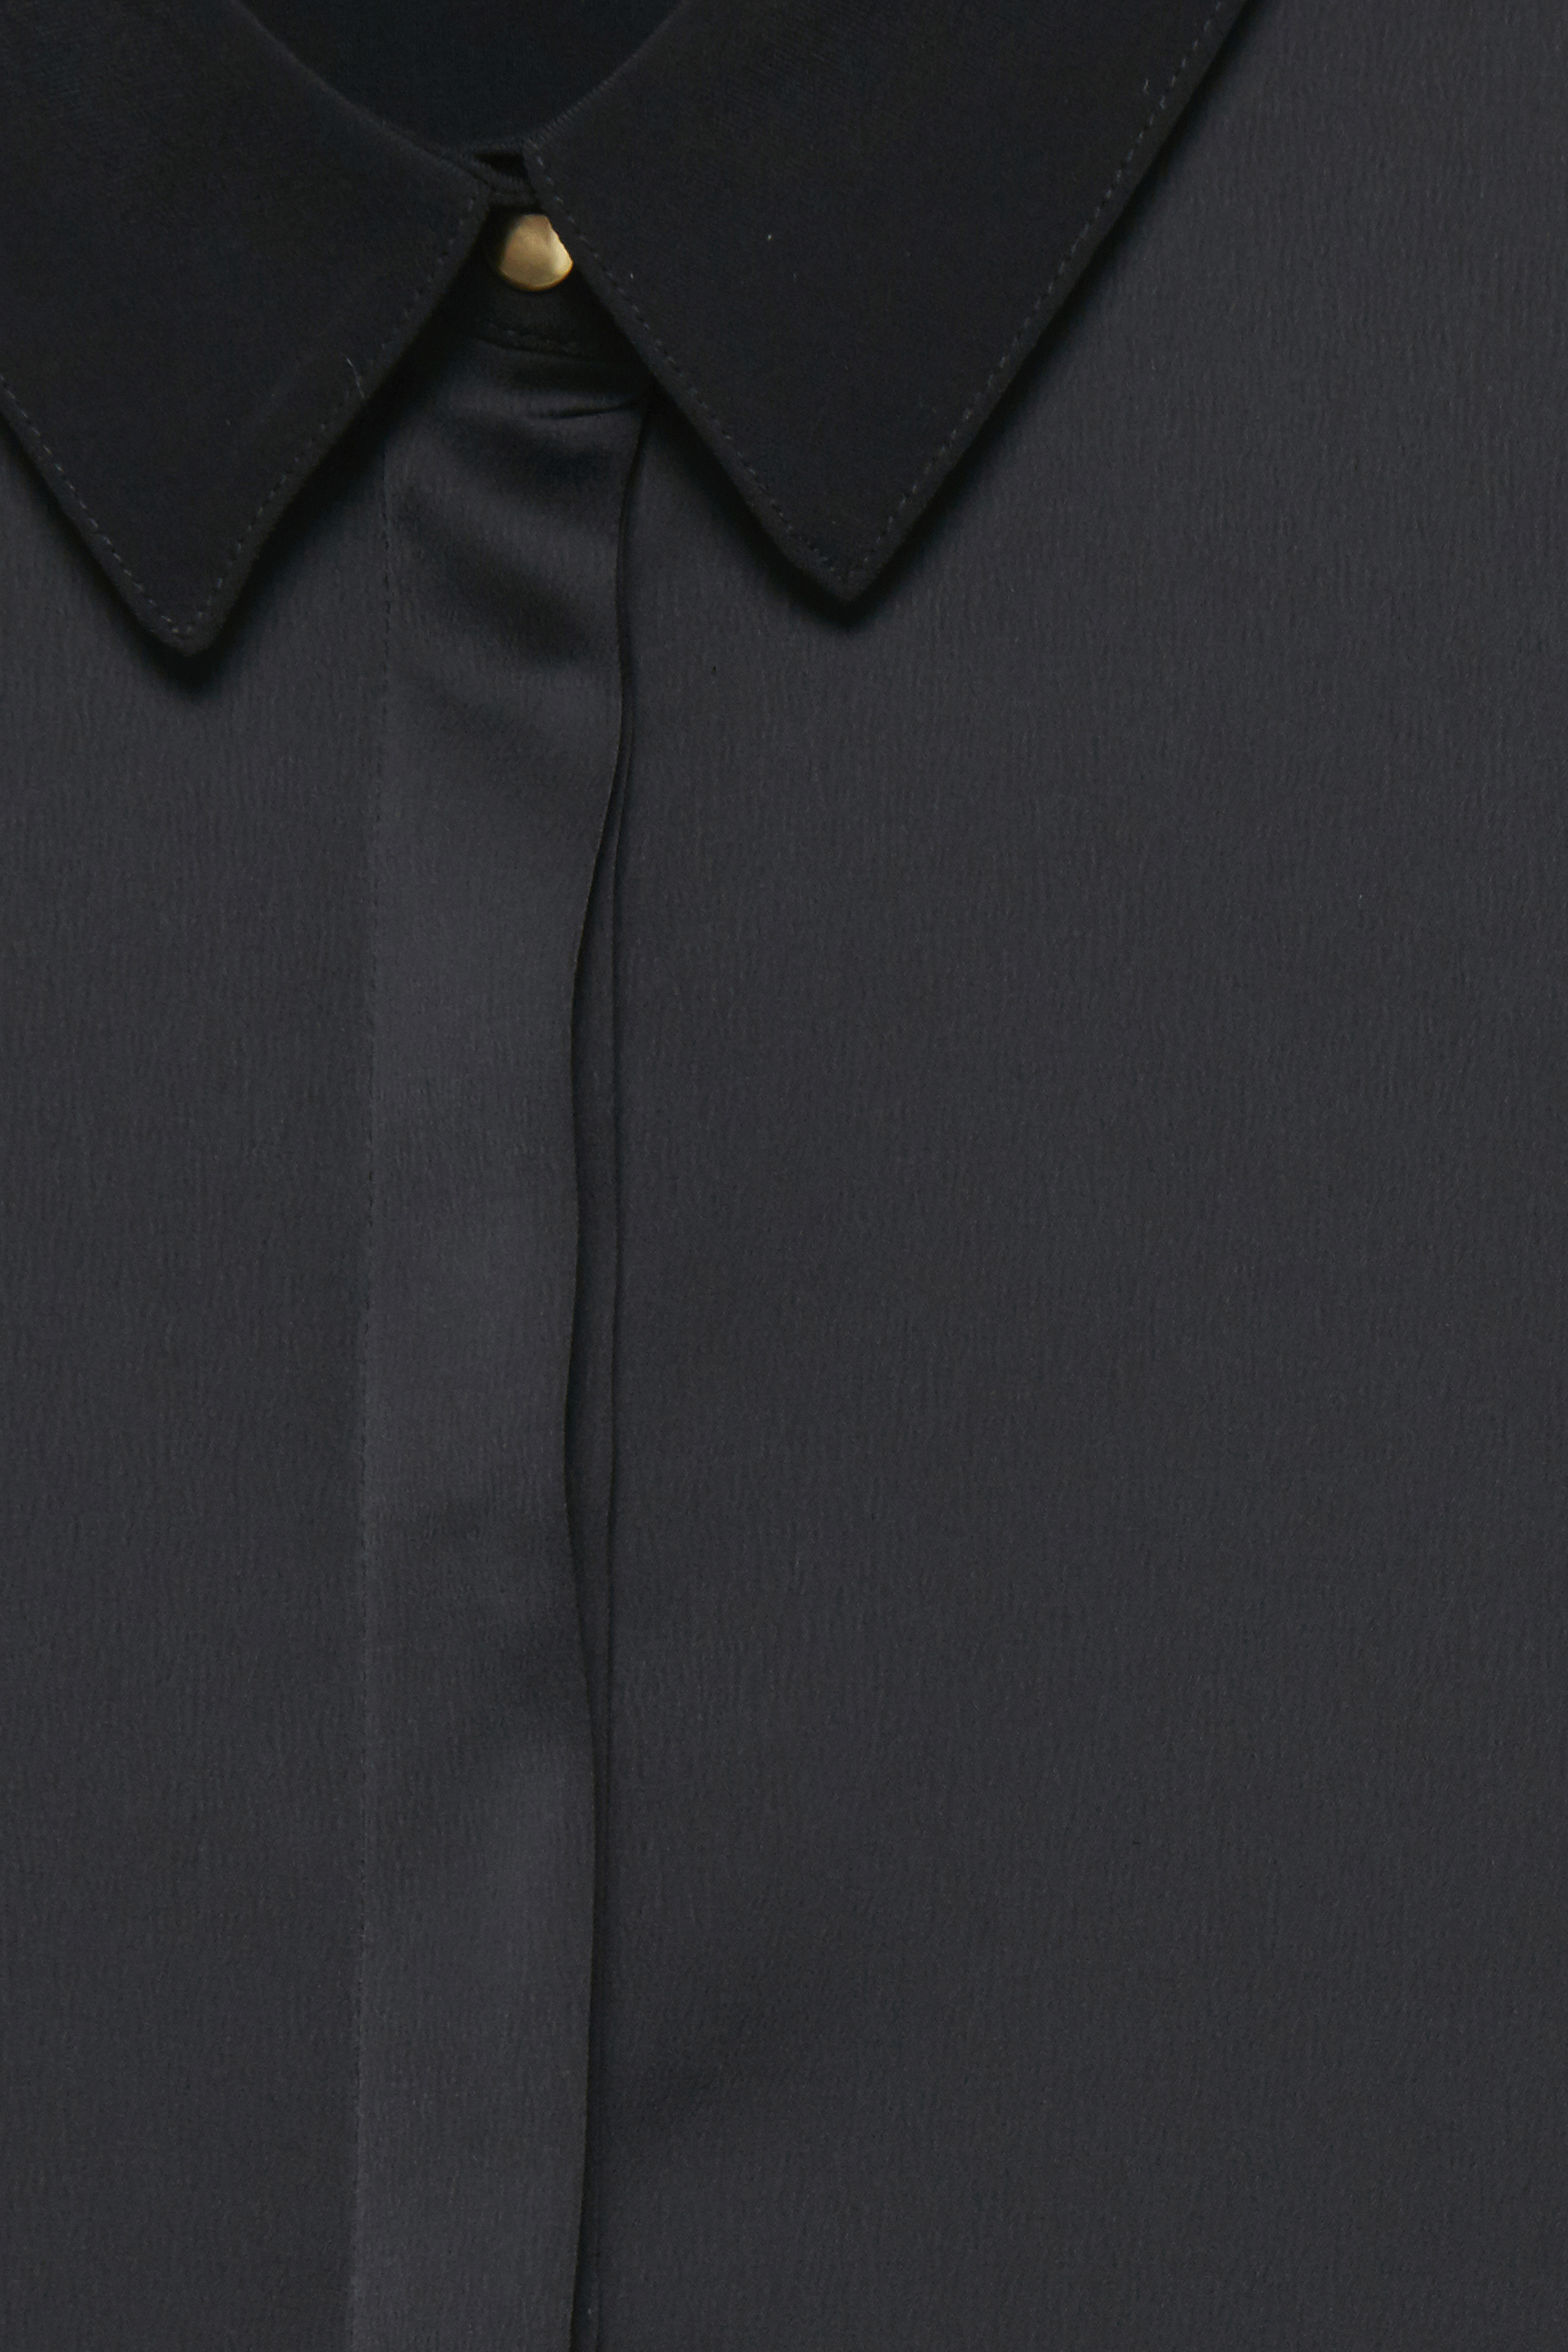 Black Long sleeved shirt from b.young – Buy Black Long sleeved shirt from size 36-46 here